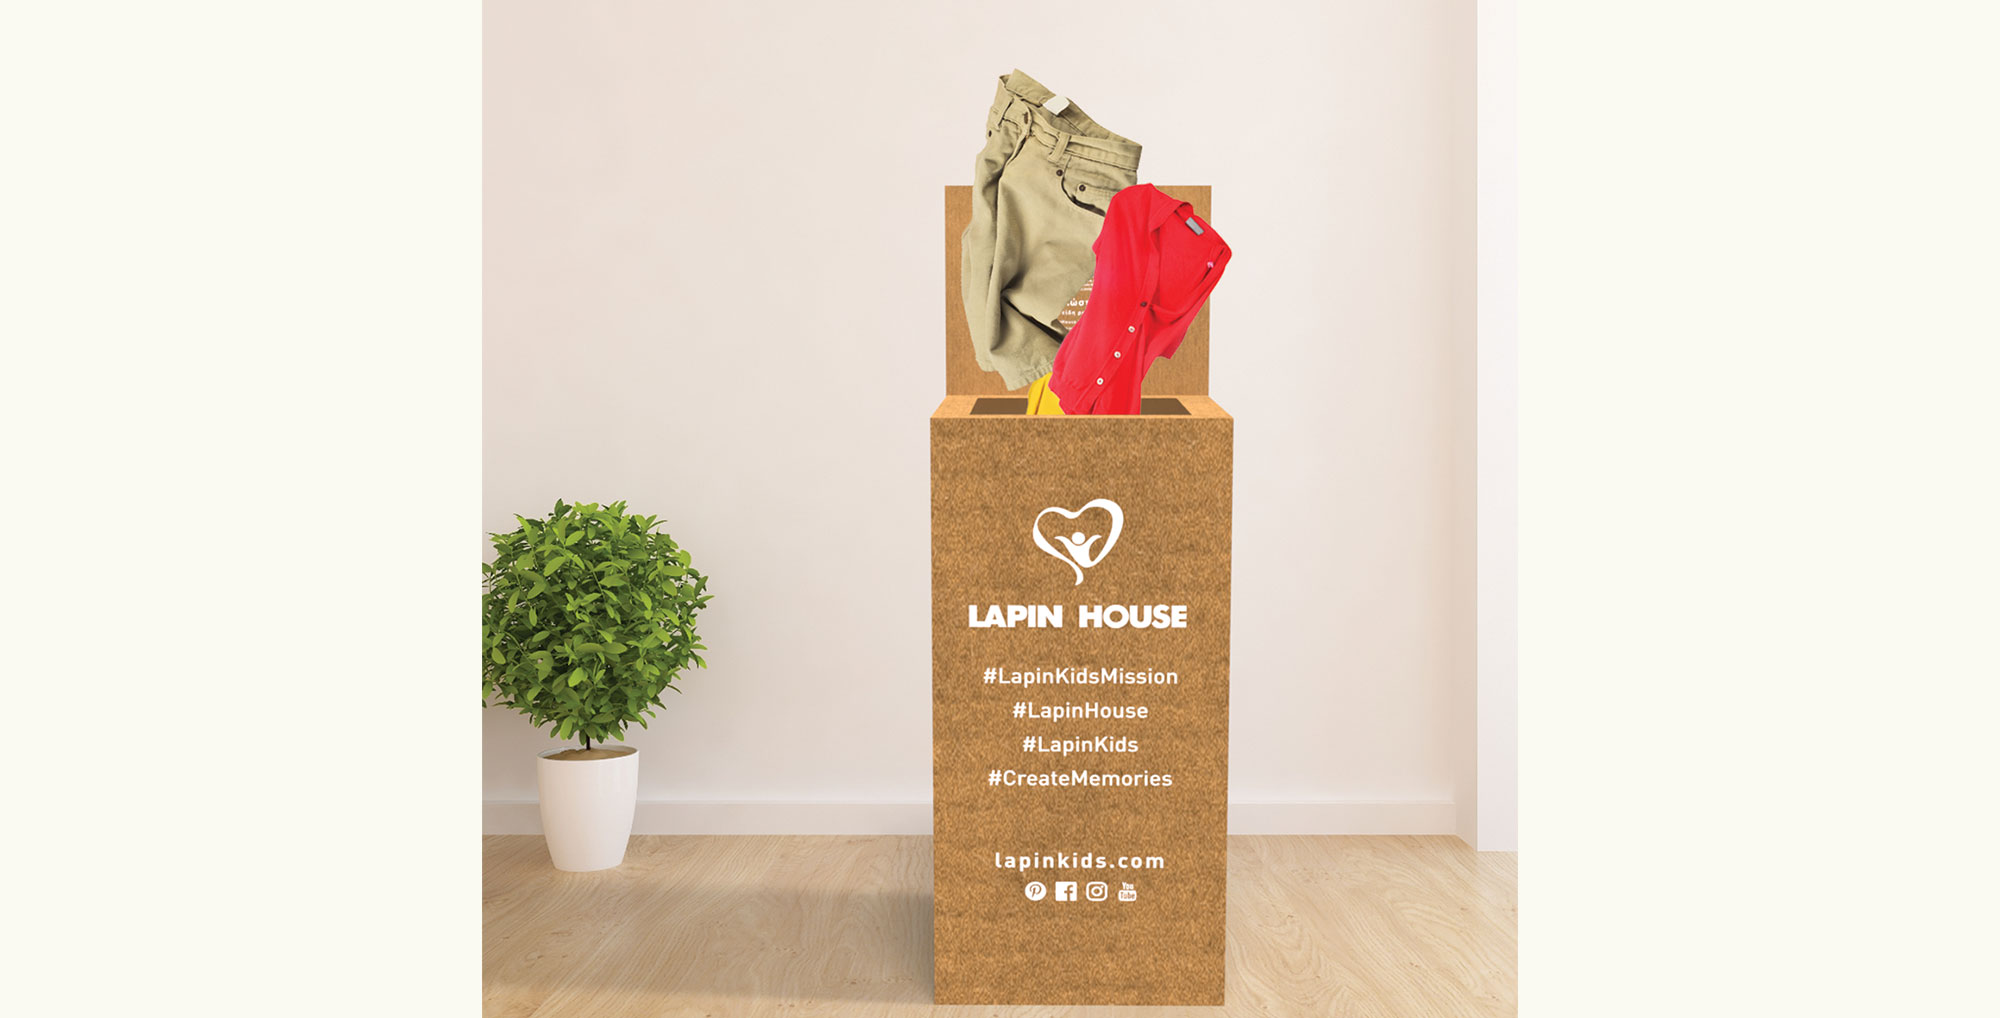 Lapin House Sustainability Campaign: From Clothing Recycling to a Healthier & Greener Planet